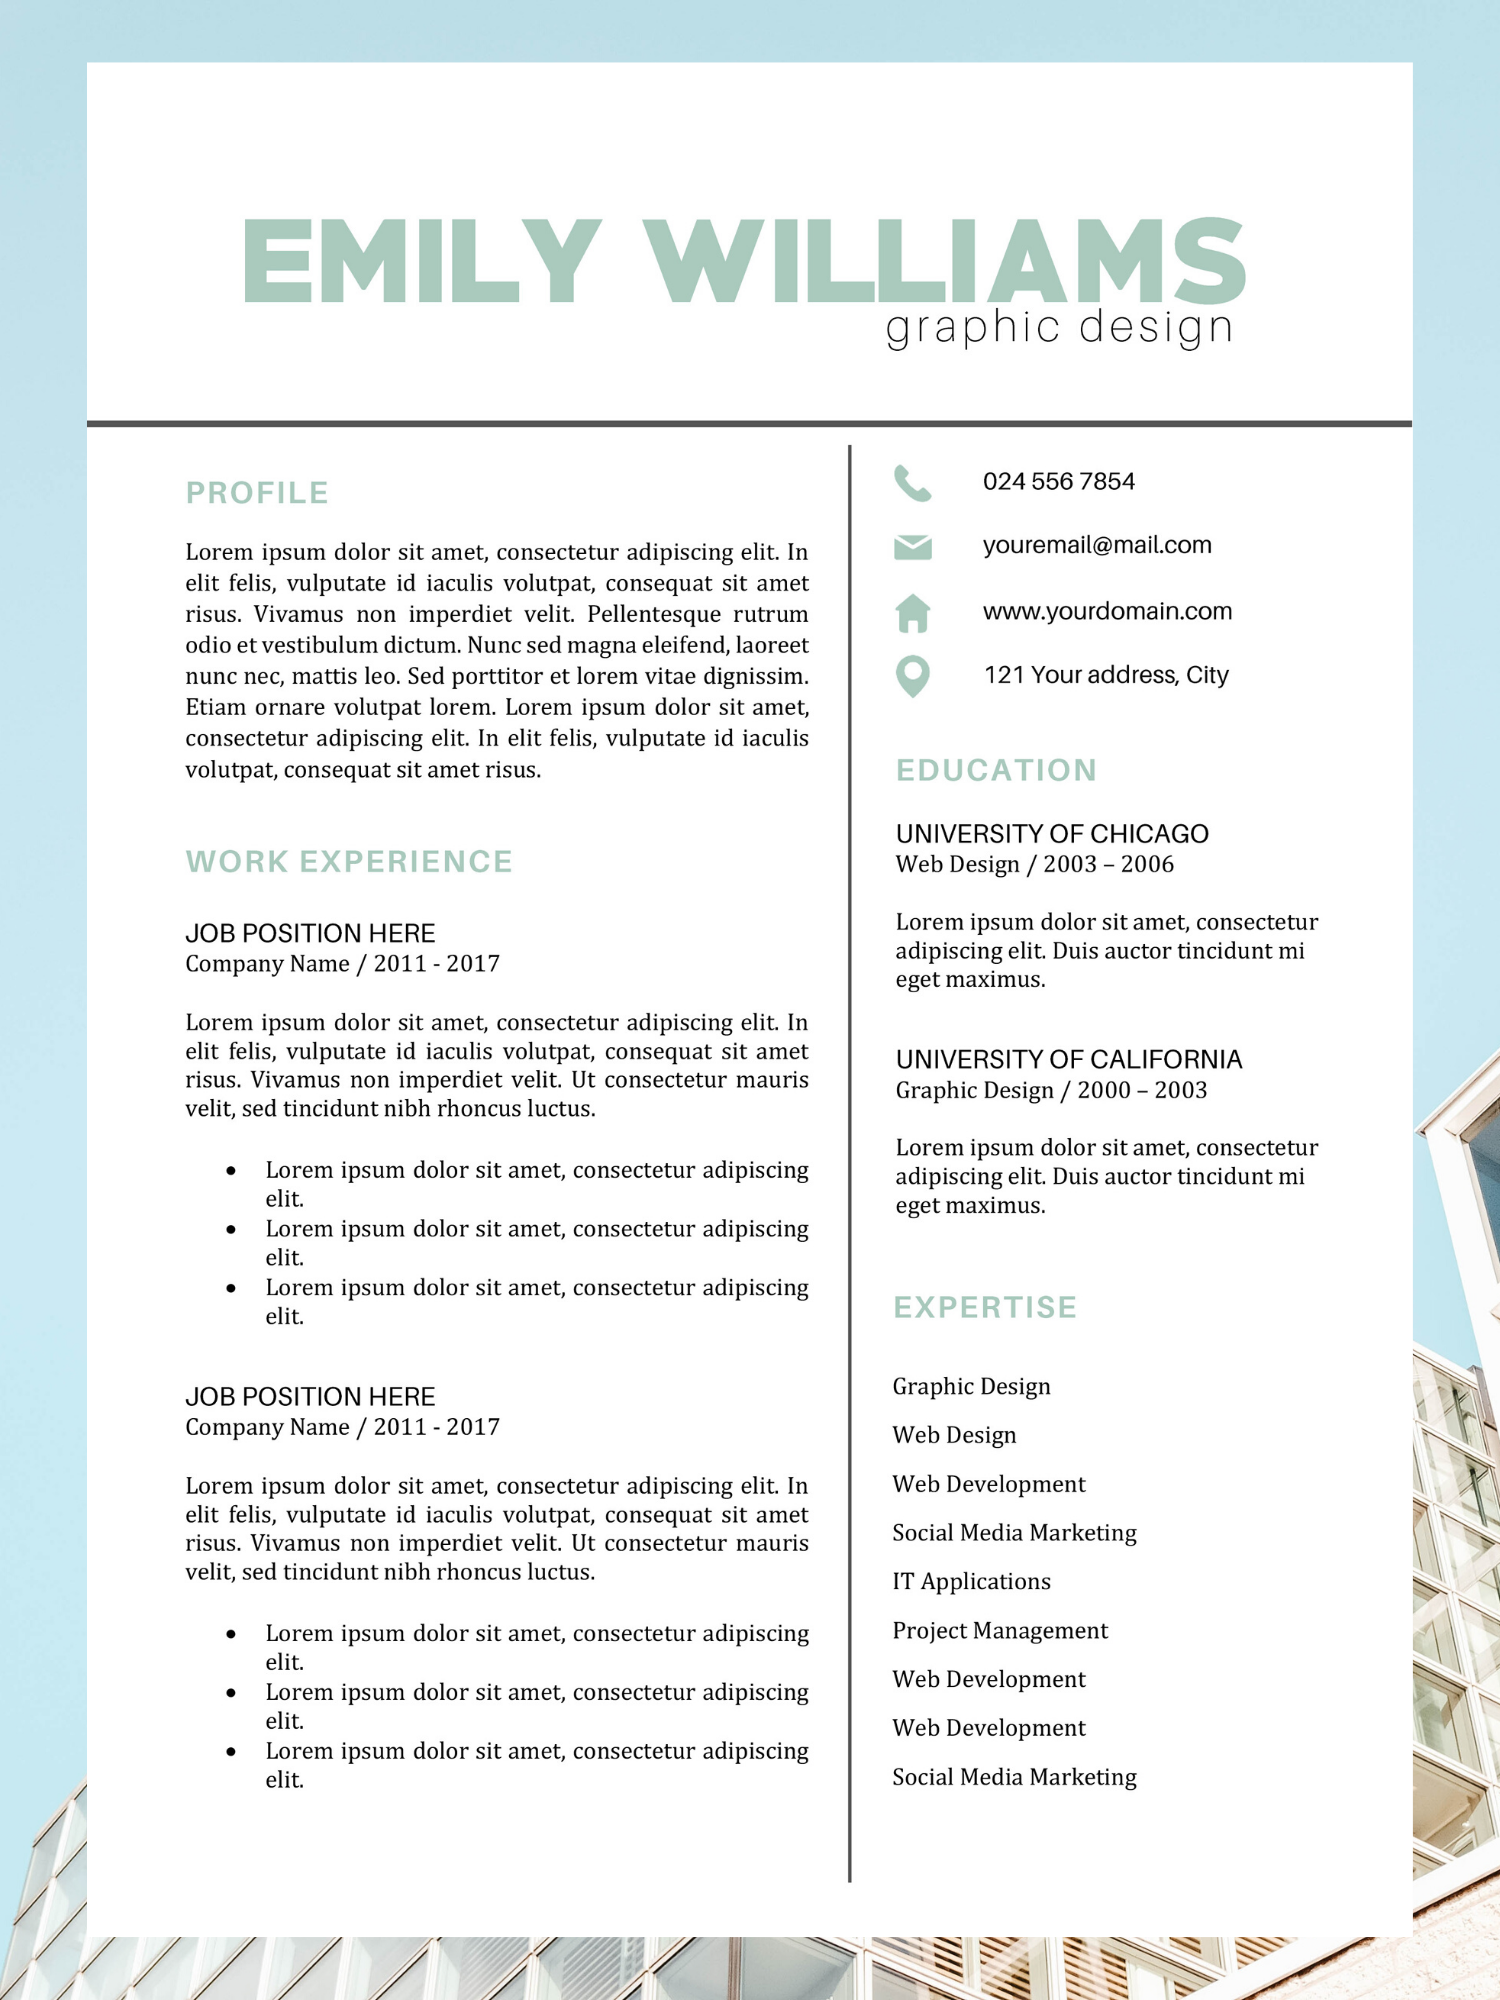 Color Resume Template Best CV Design Emily Williams in